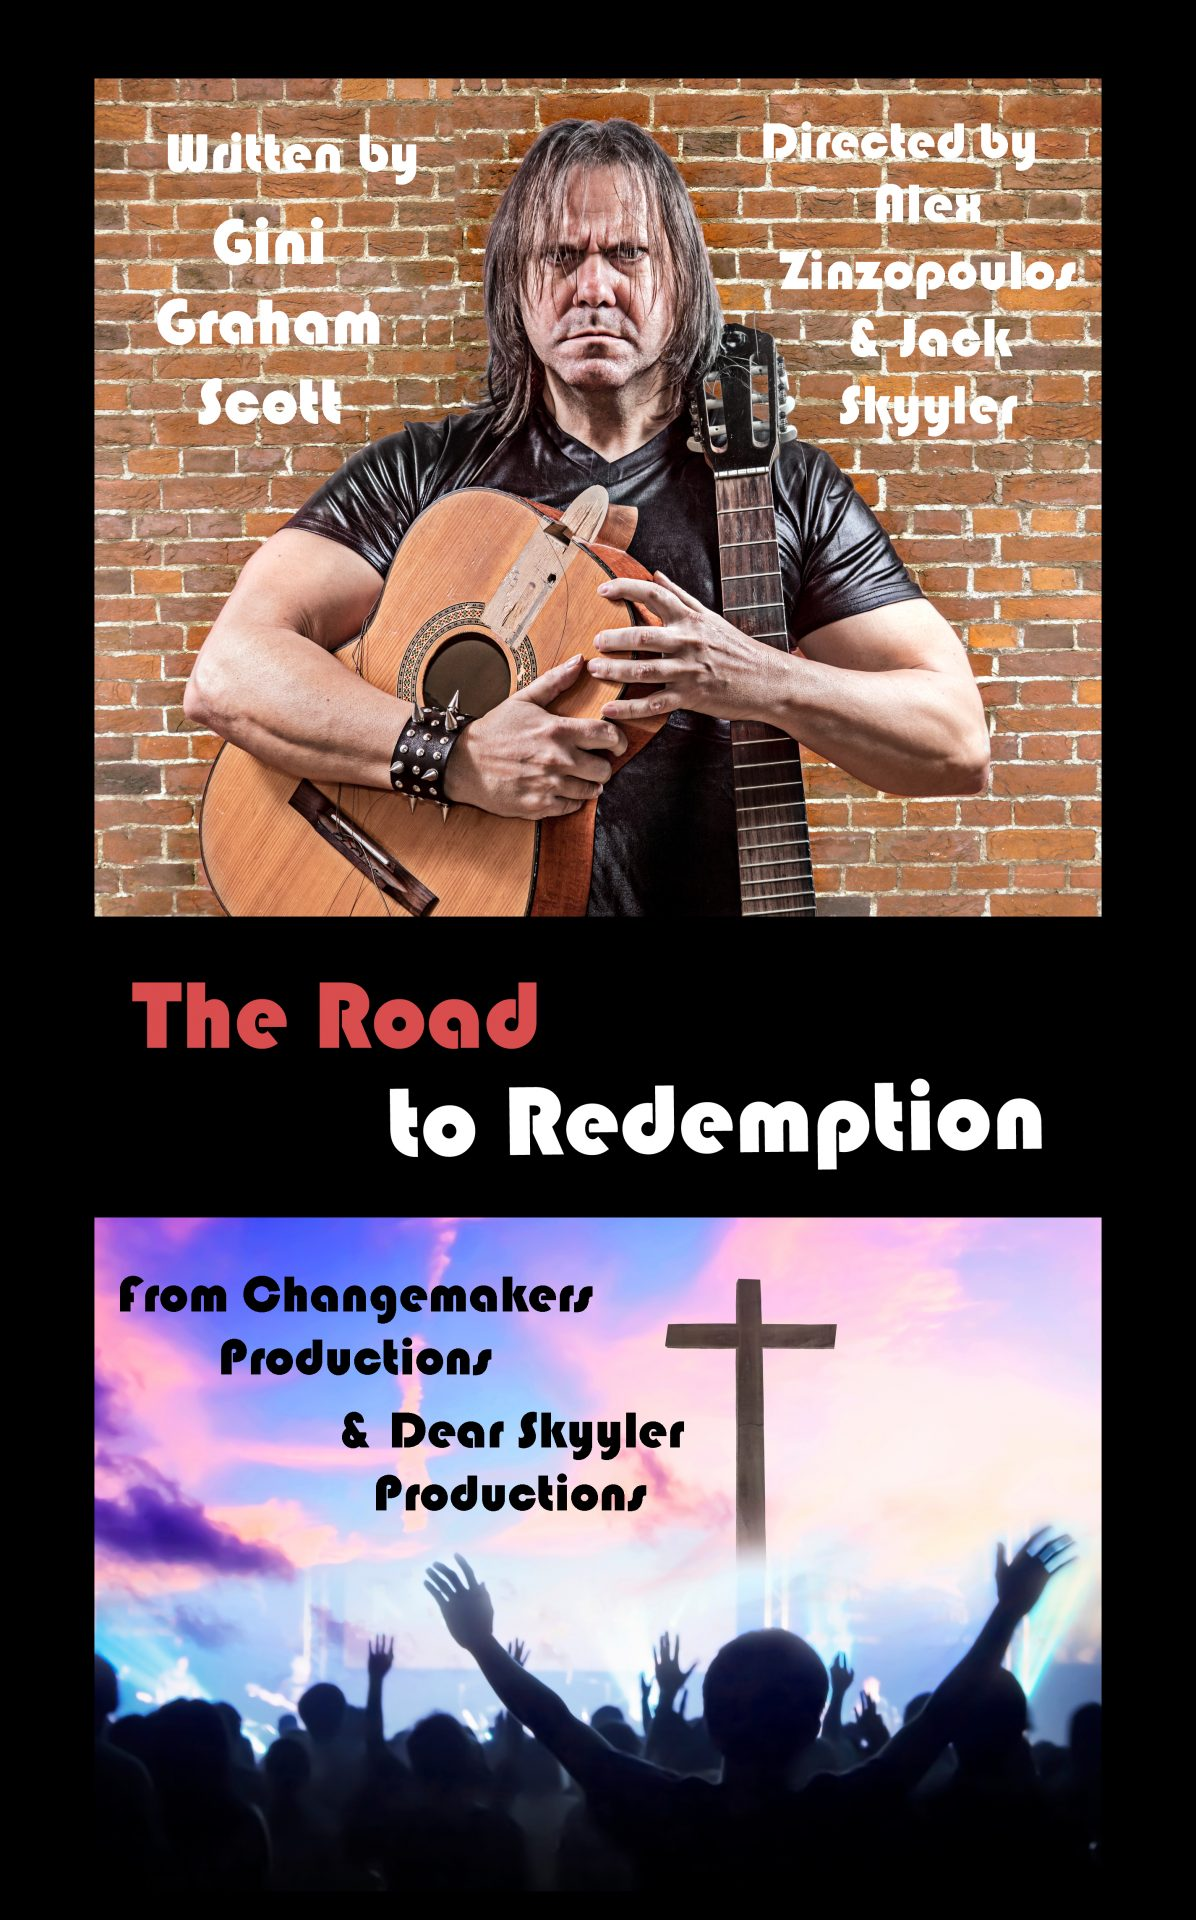 Road to Redemption Film Poster